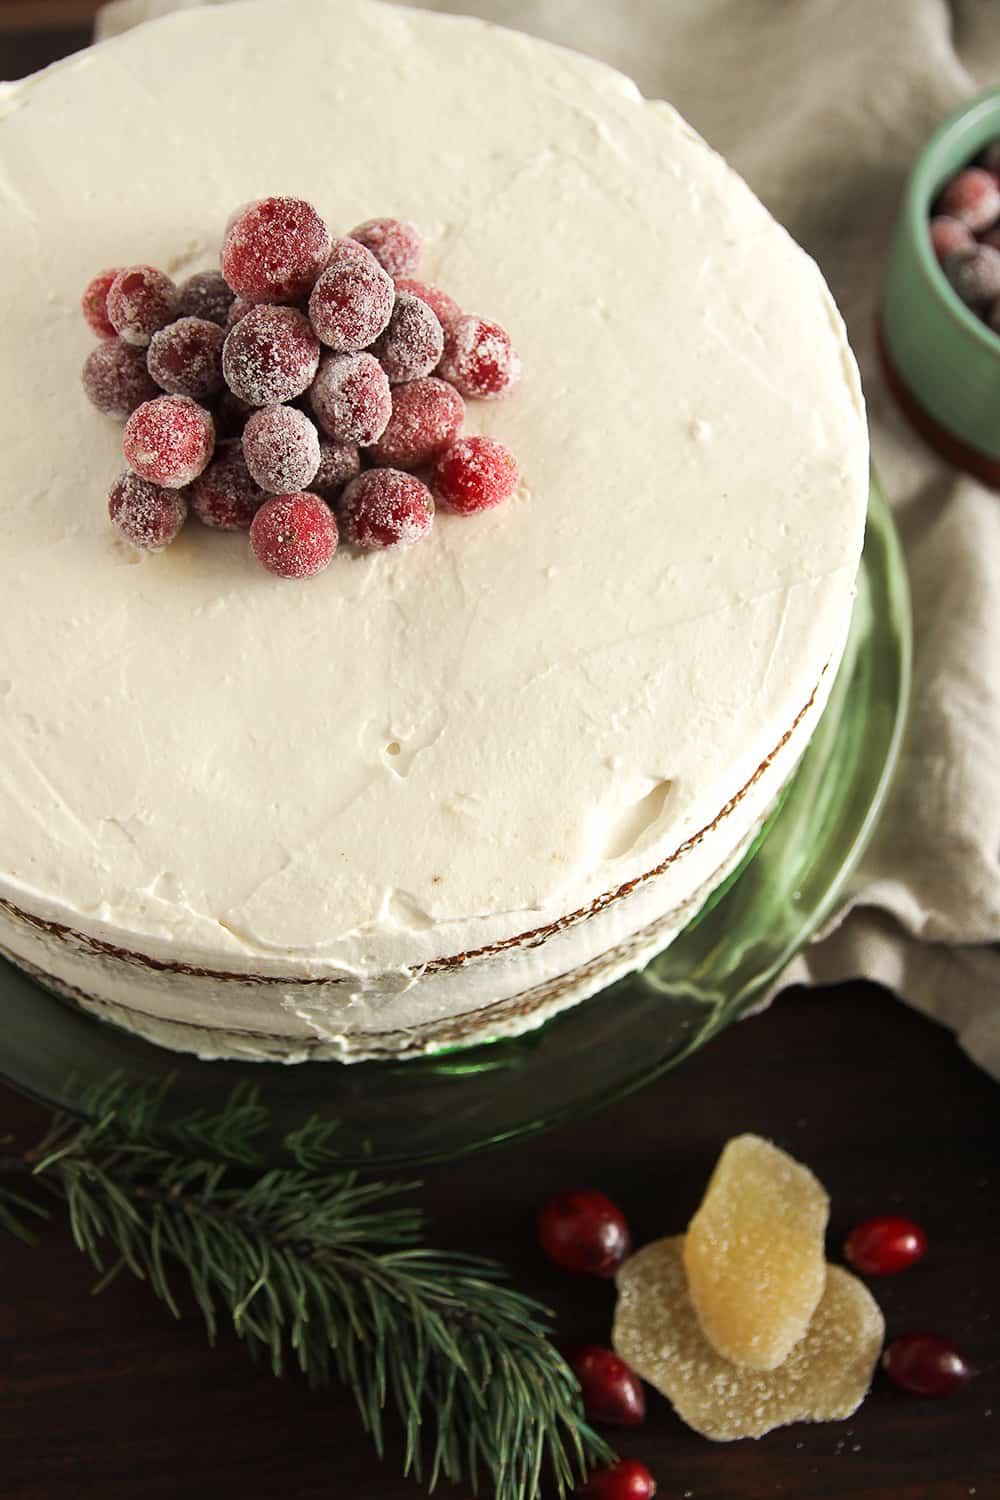 Sugared Cranberries are the perfect adornment to Gingerbread Layer Cake